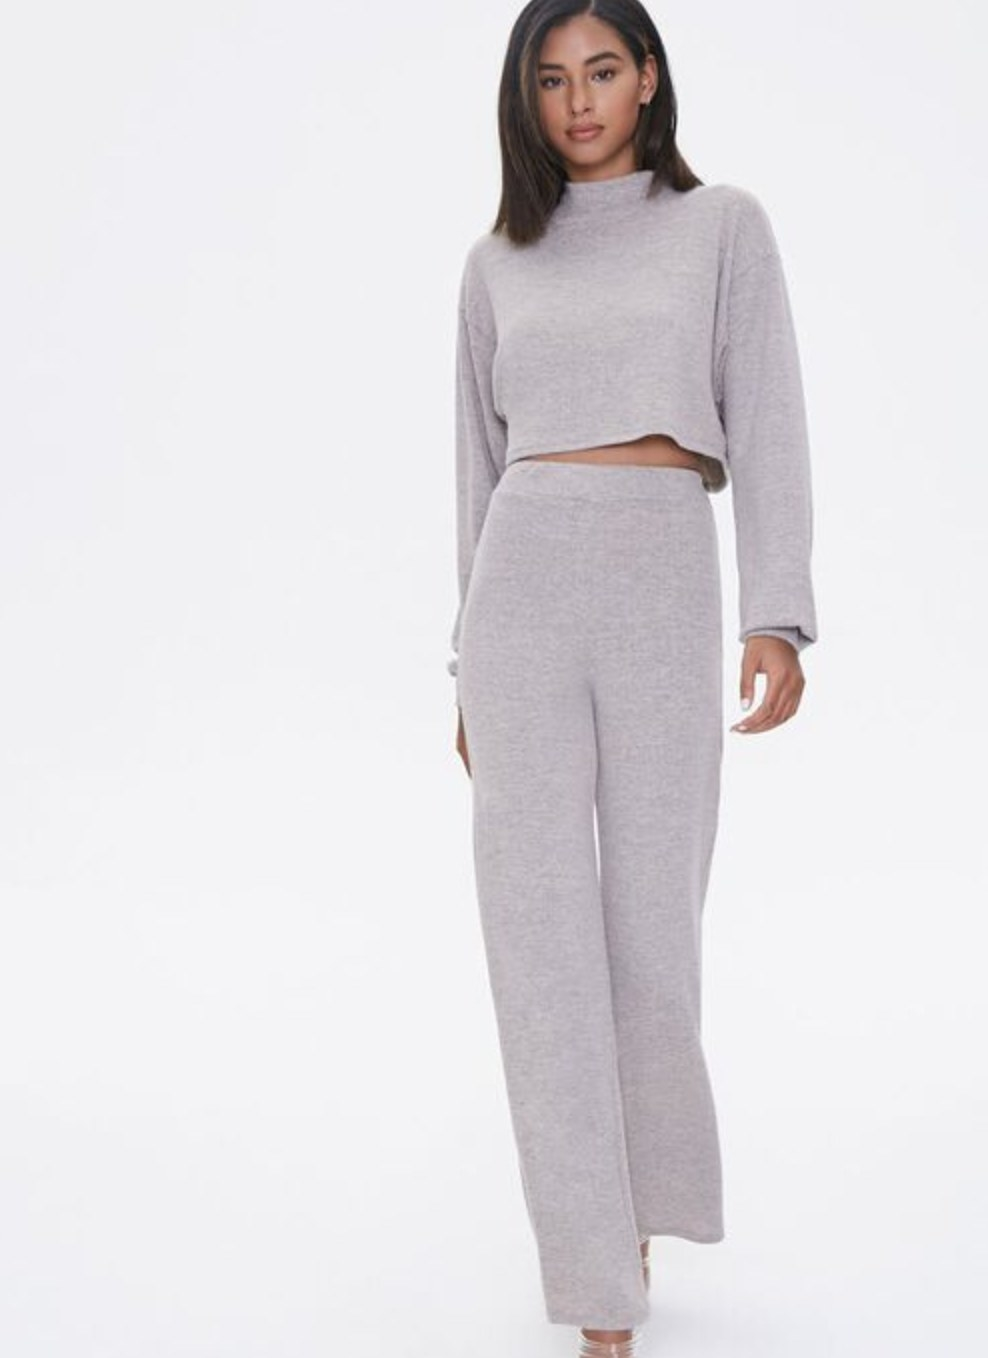 Model is wearing a grey mock neck sweater and matching pants